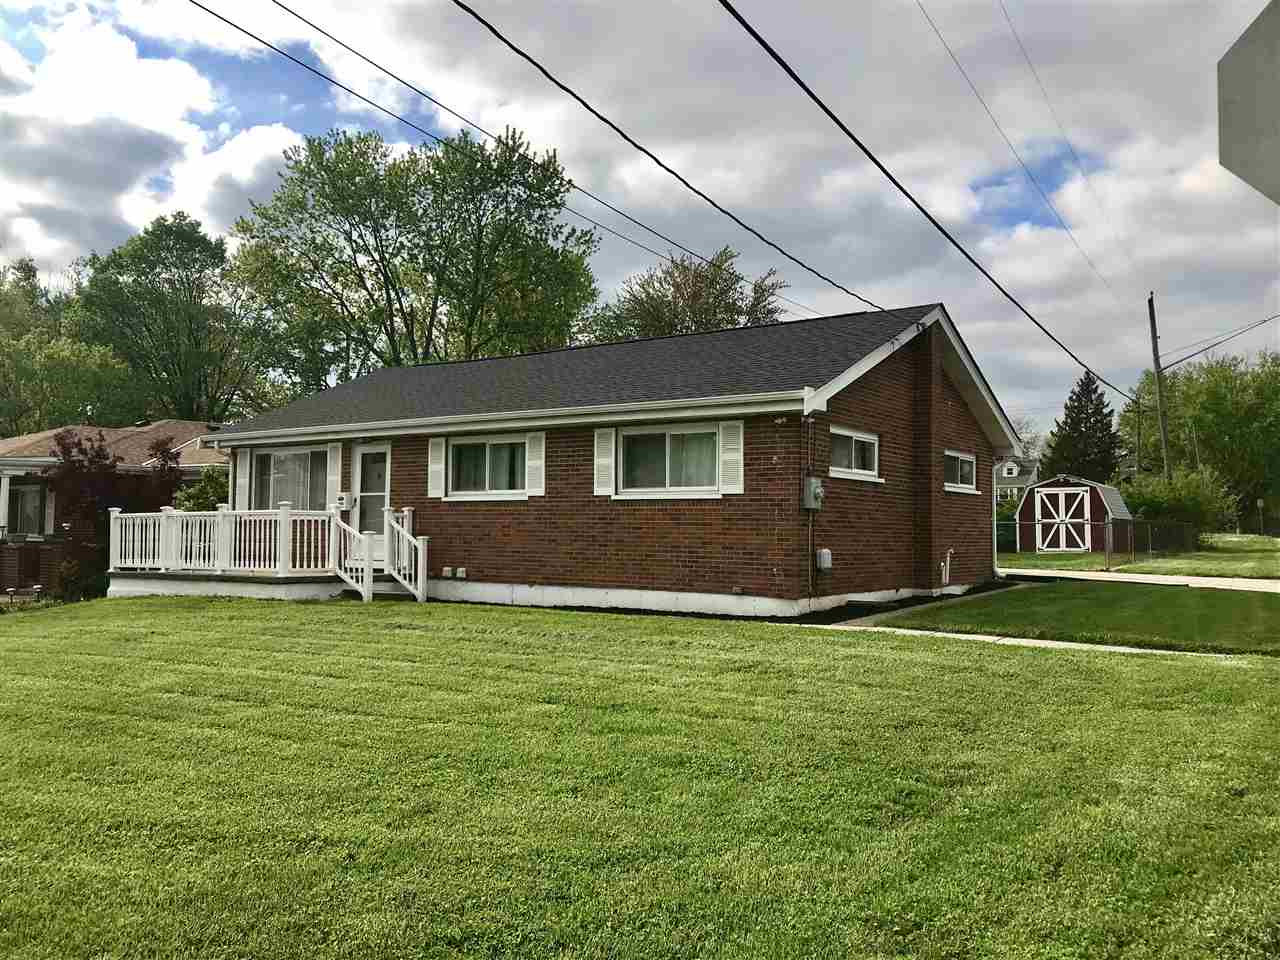 Photo 3 for 20 Julia Ave Florence, KY 41042